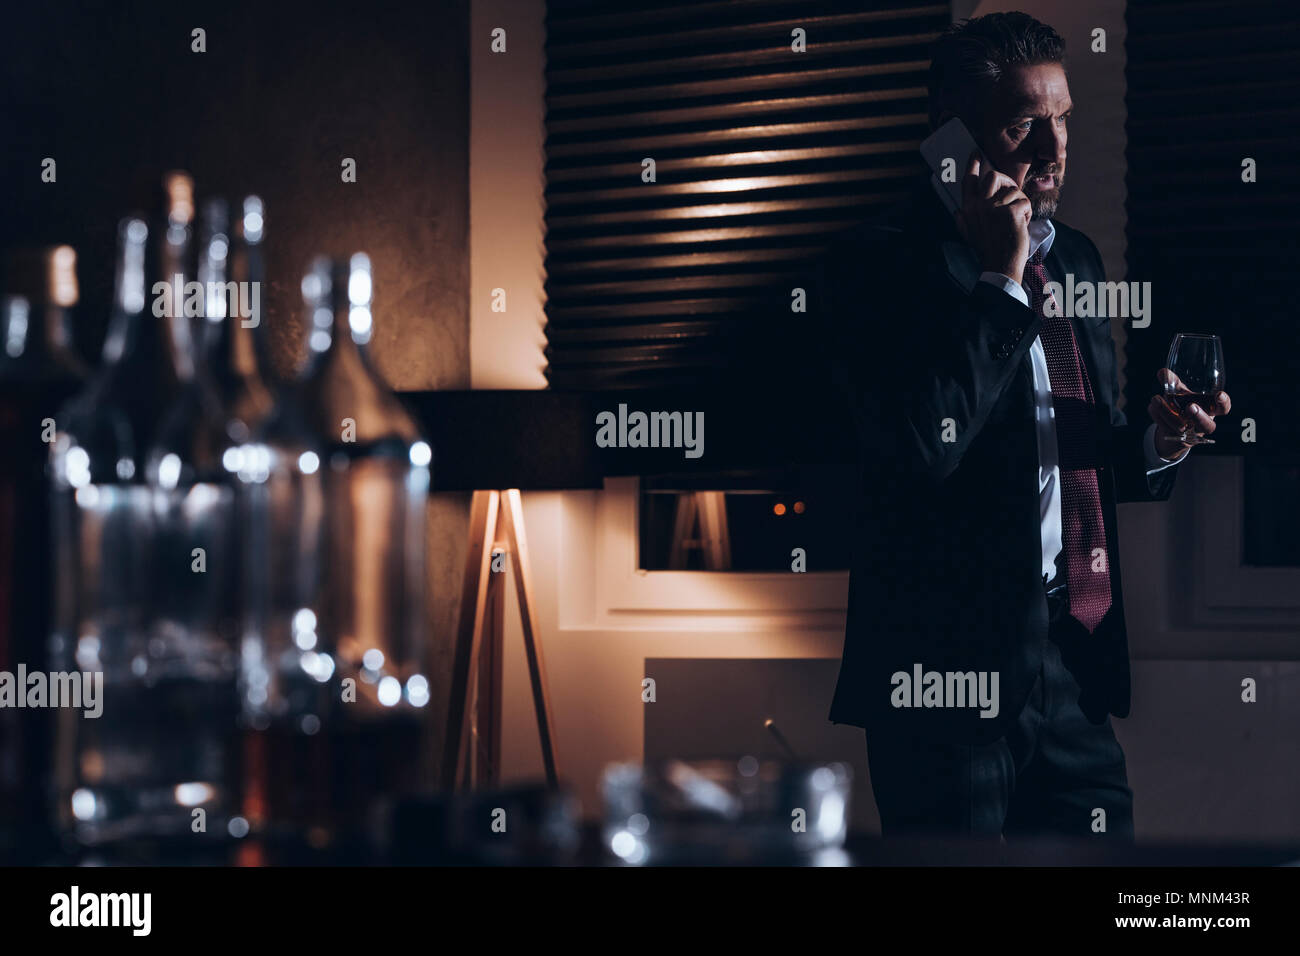 Stressed middle-aged man in a suit talking on the phone and holding a glass of alcohol while standing in a dark room with empty booze bottles in a blu - Stock Image